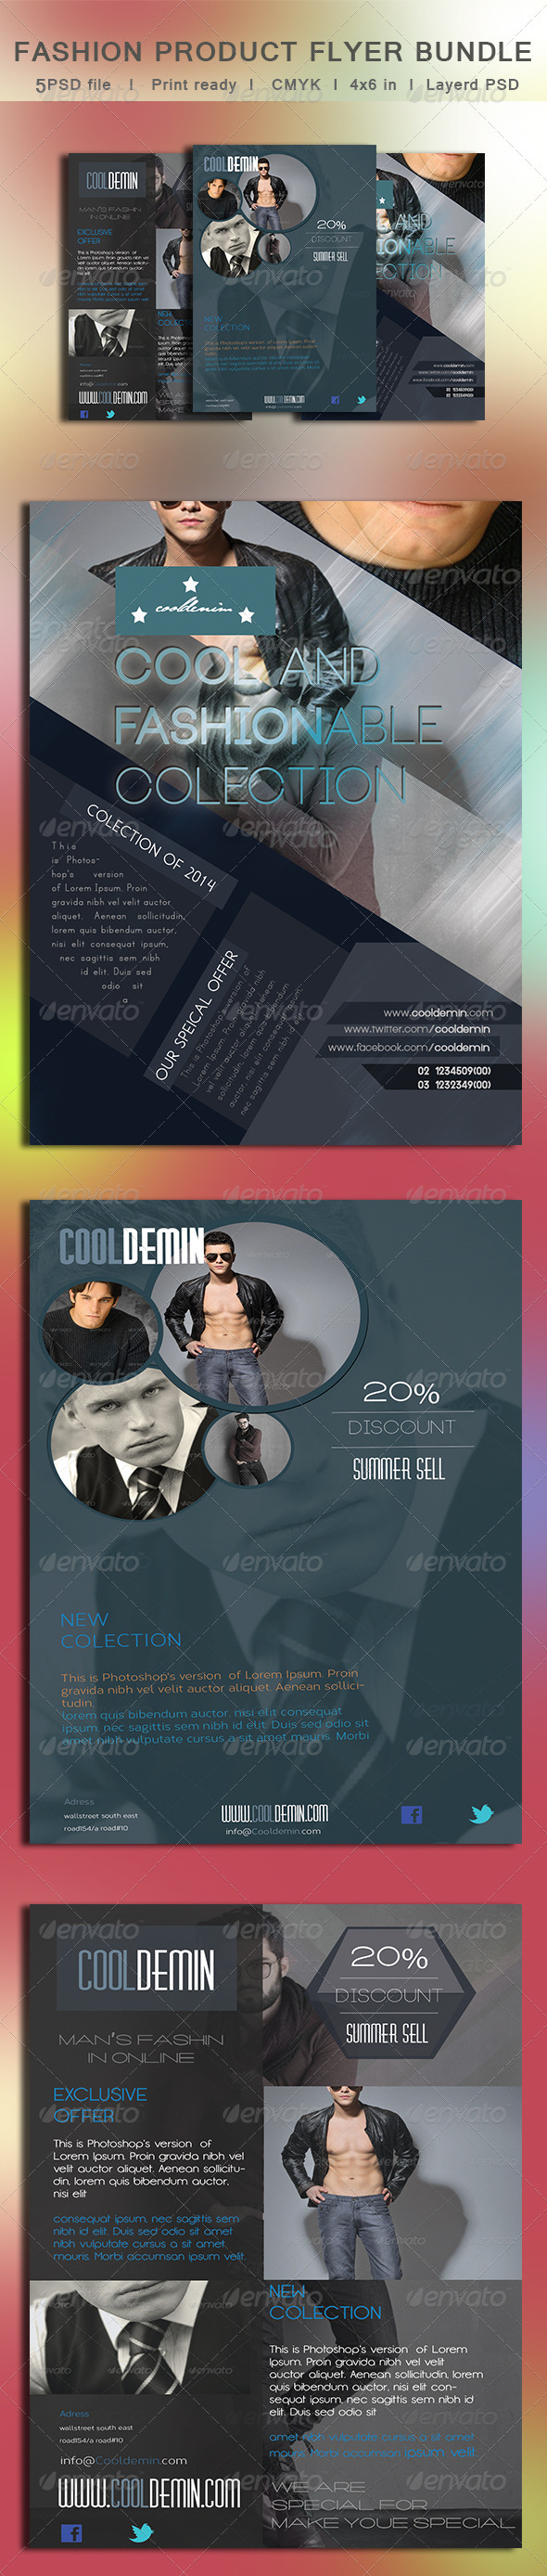 GraphicRiver 3 in 1 Fashion Product Flyer Bundle 8267578